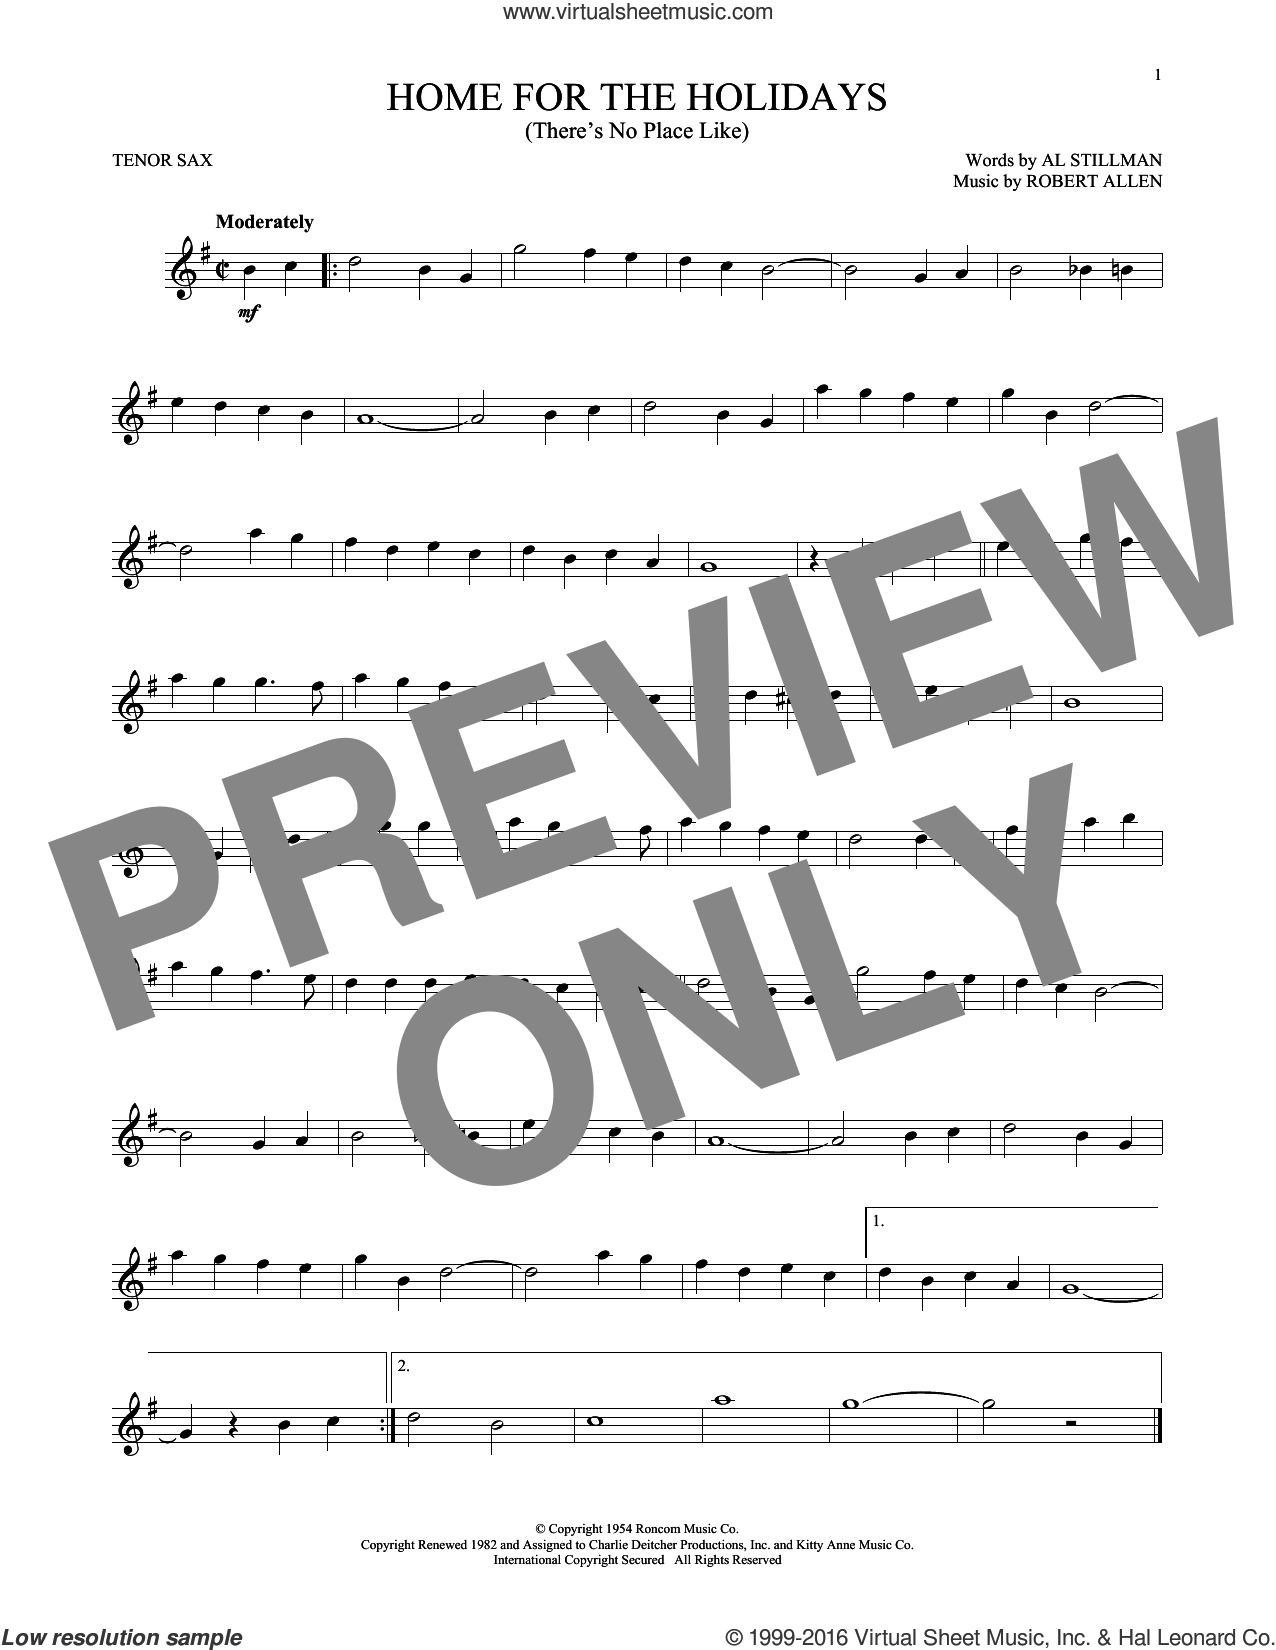 (There's No Place Like) Home For The Holidays sheet music for tenor saxophone solo by Perry Como, Al Stillman and Robert Allen, intermediate skill level